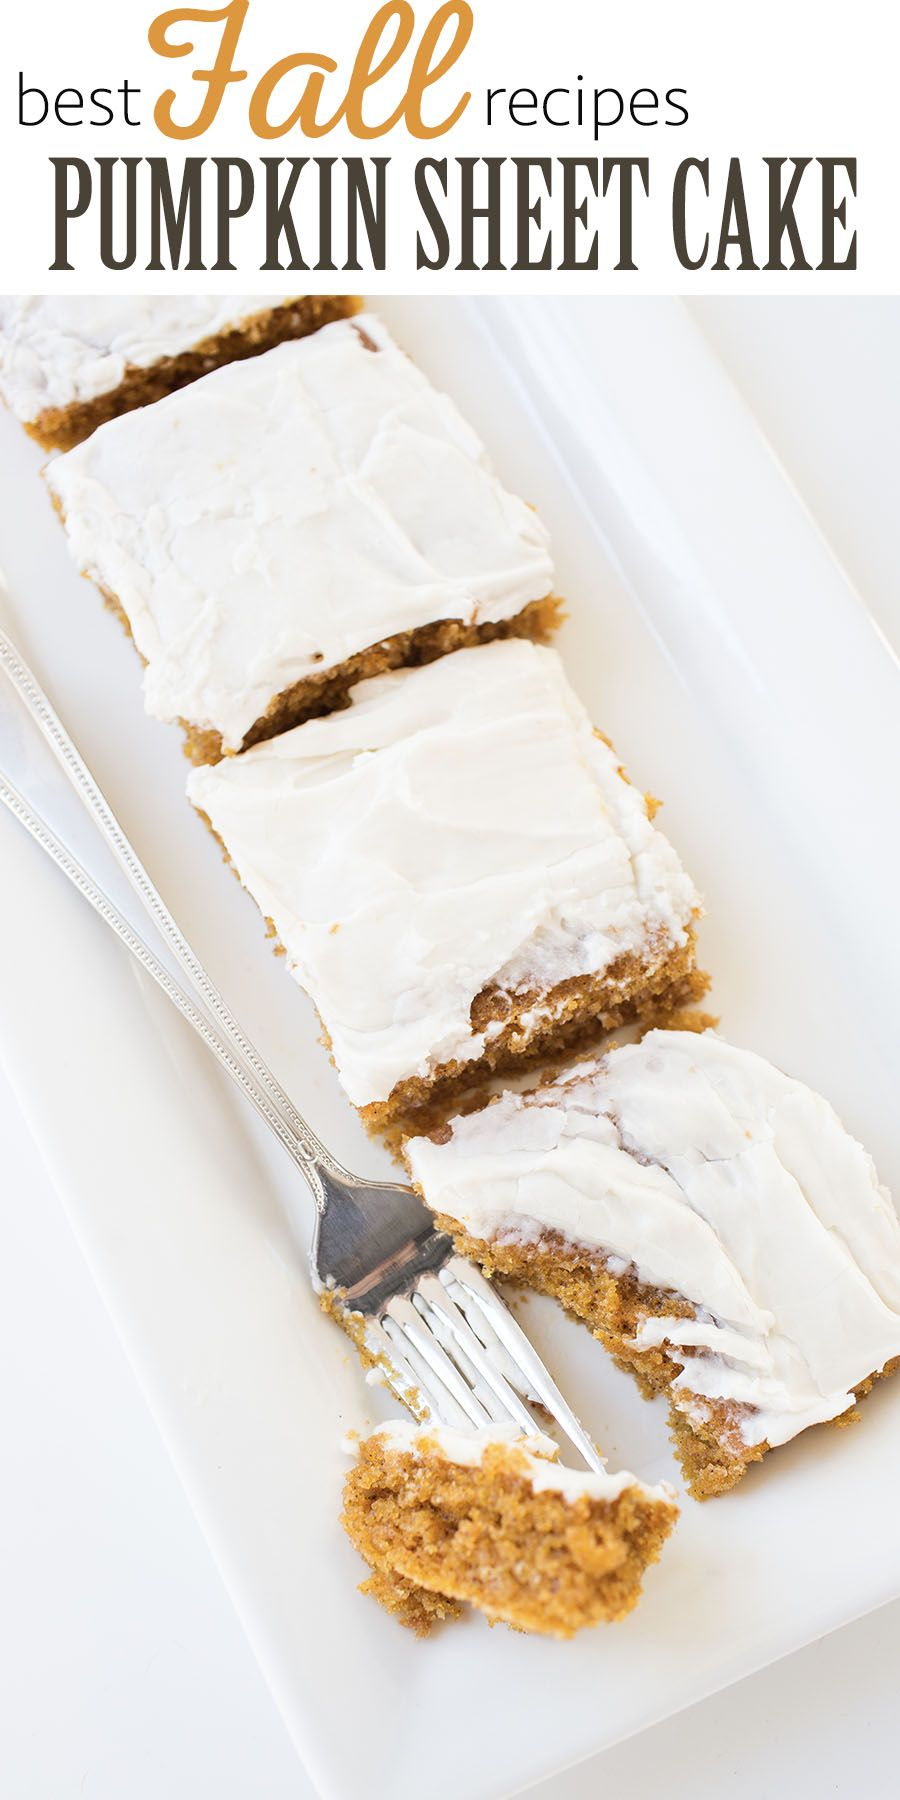 best-fall-recipes-pumpkin-sheet-cake